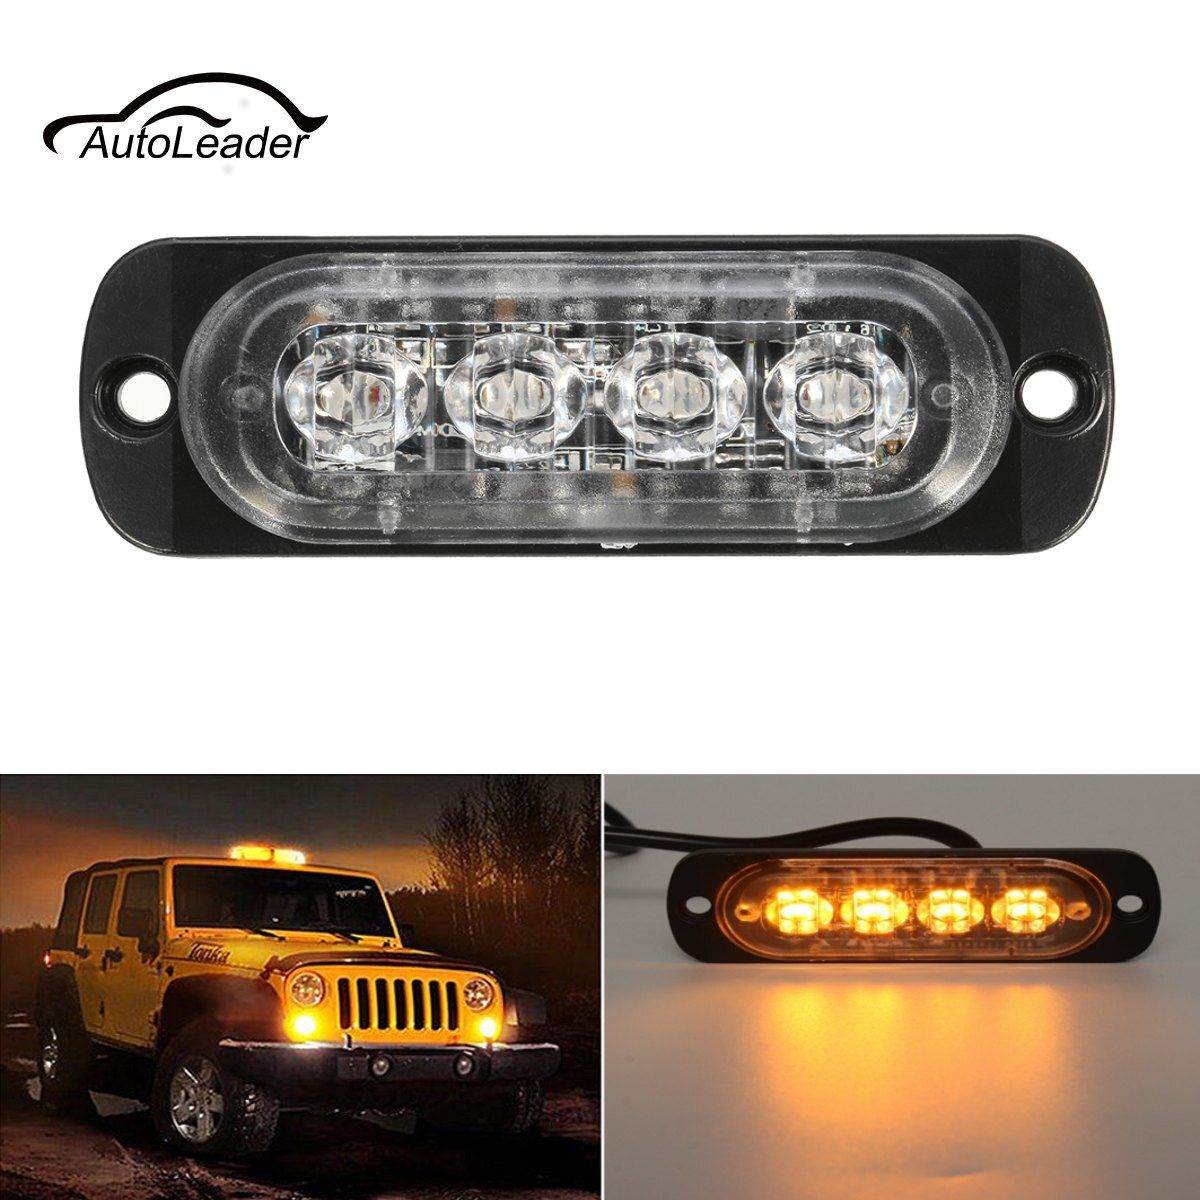 4 LED Car Truck Flash Emergency Beacon Warning Light Bar Hazard Strobe Amber